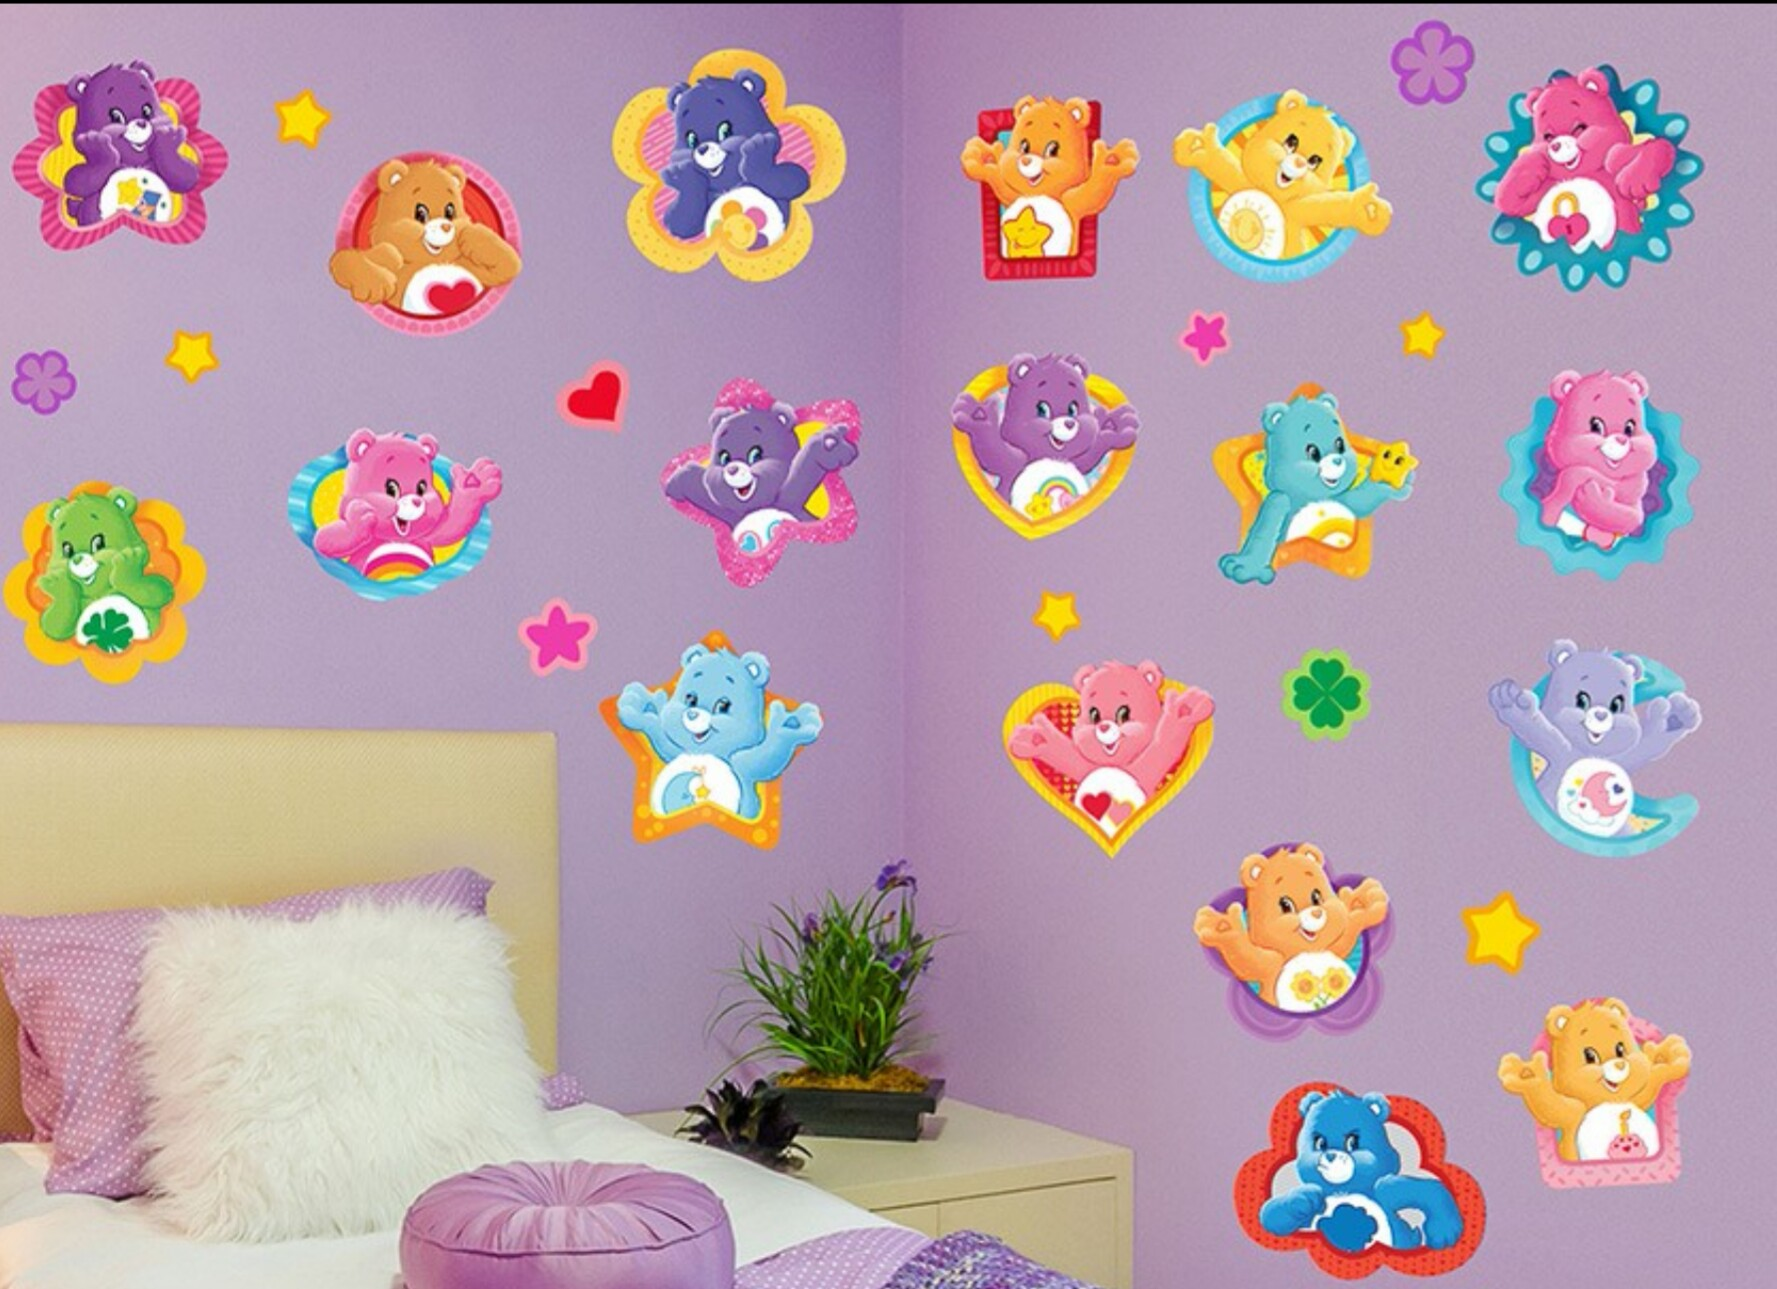 Carebears wall decals by wall alternative mindz for Care bears wall mural